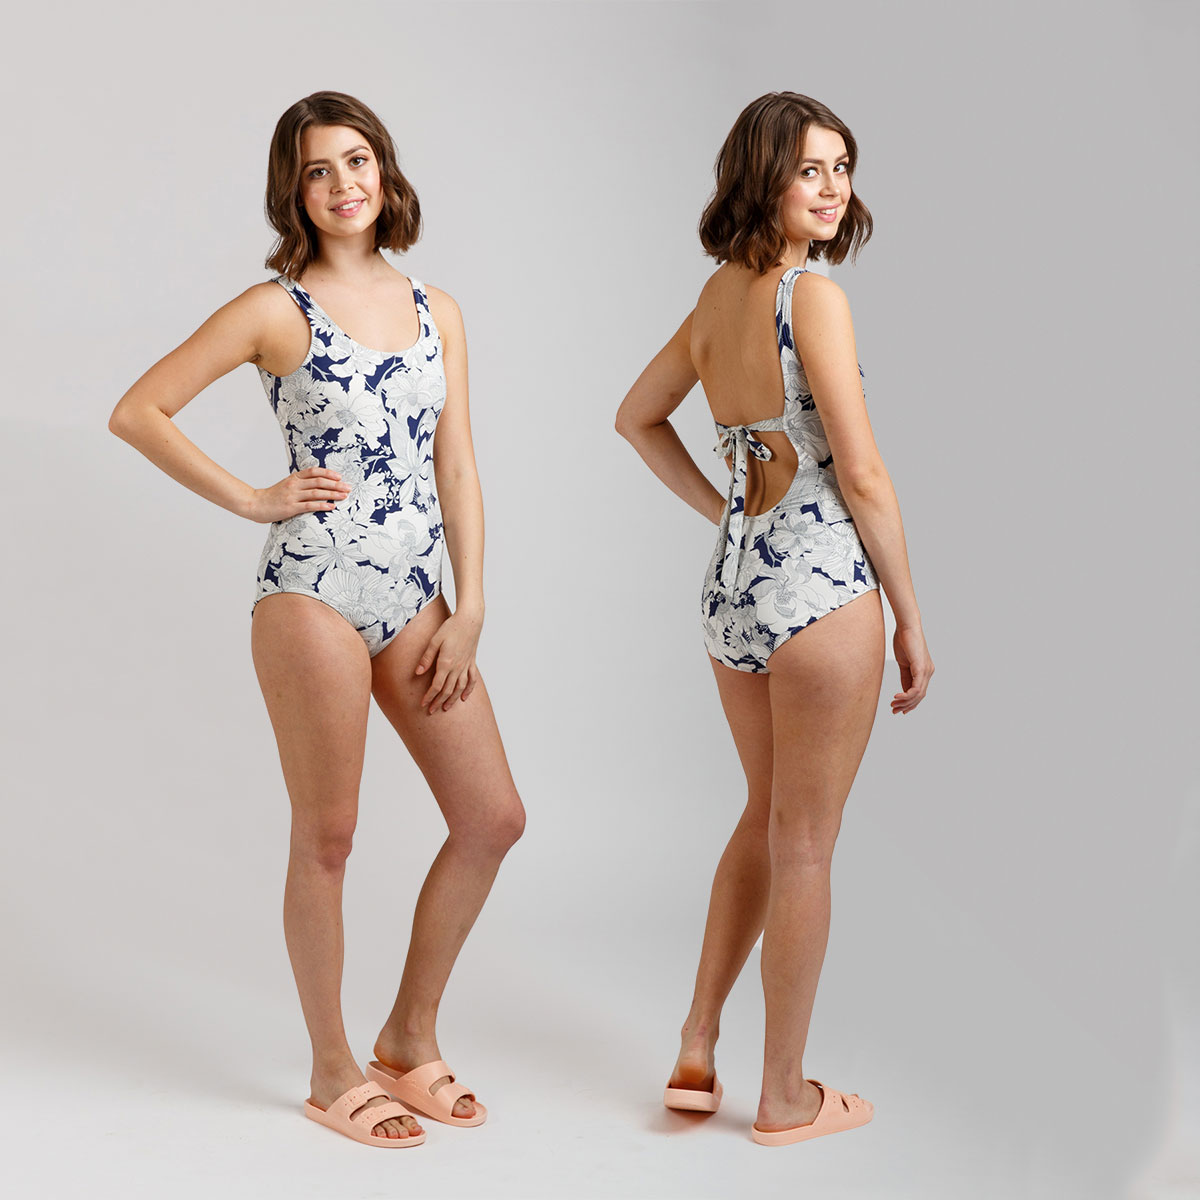 Megan Nielsen Cottesloe Swimsuit View A // Sizes 0-20